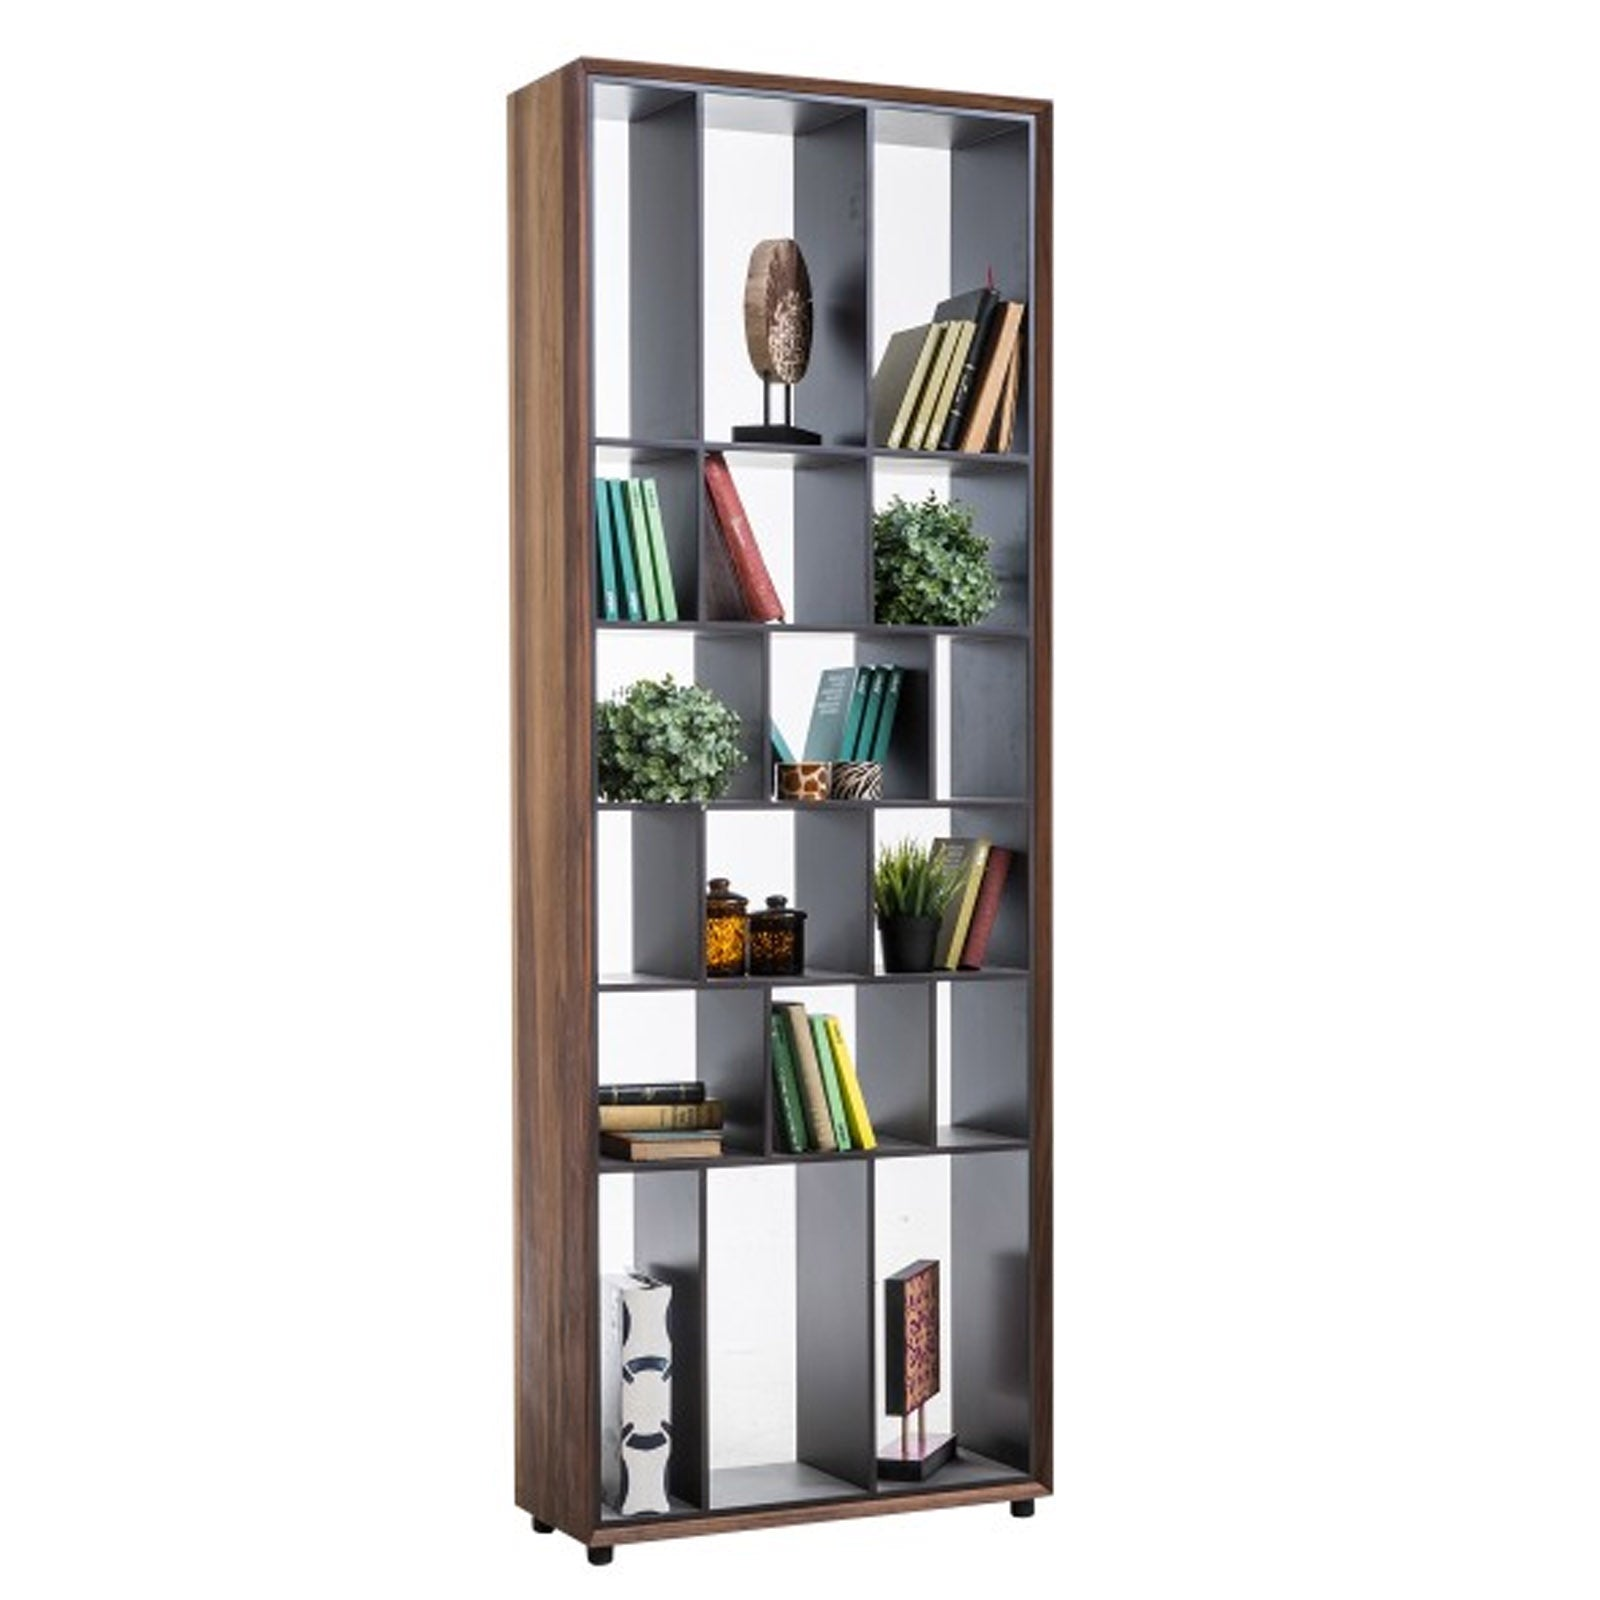 Pre-Order 20 days delivery Puzzle Bookcase  PUZ015 -  خزانة بازل - Shop Online Furniture and Home Decor Store in Dubai, UAE at ebarza